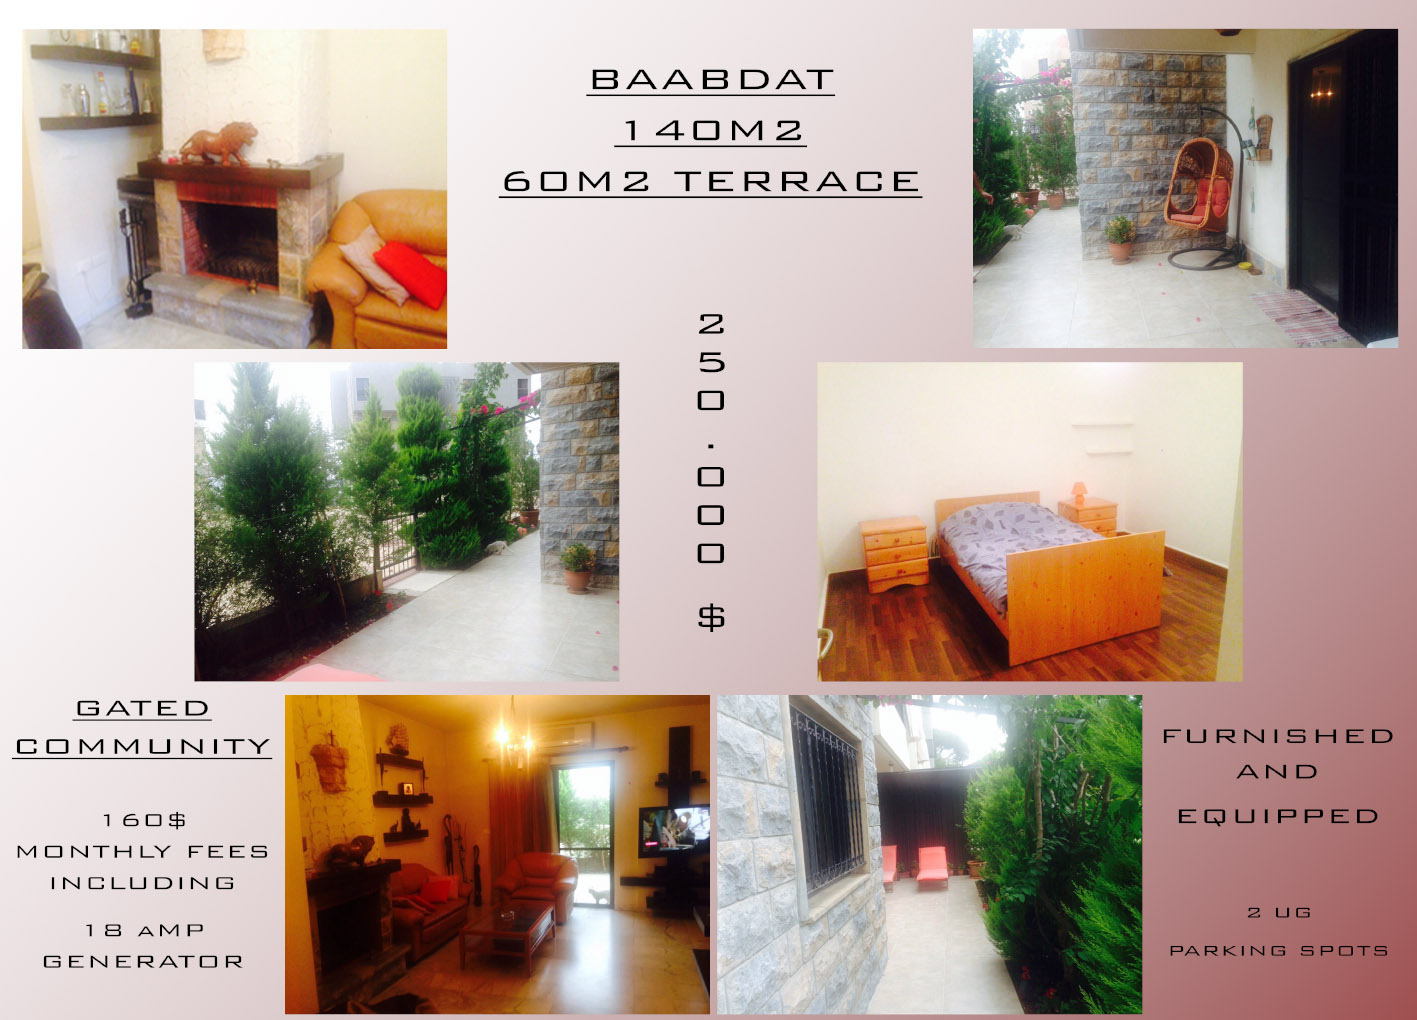 Apartment for sale in Baabdat, Metn, Lebanon